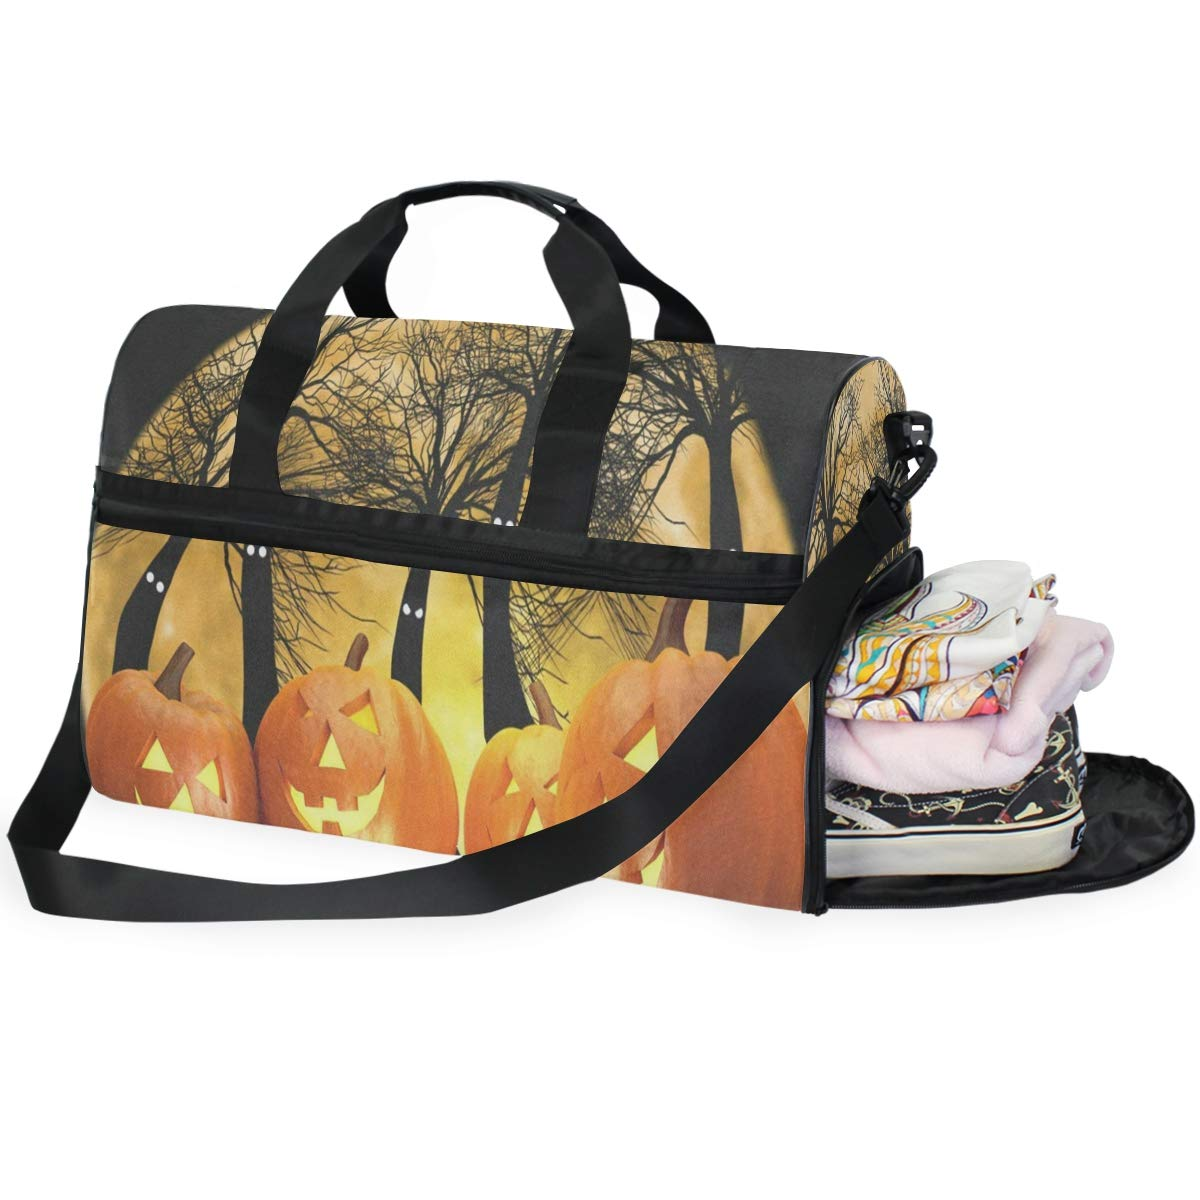 Hallowen Pumpkin Large Canvas shoulder bag with Shoe Compartment Travel Tote Luggage Weekender Duffle Bag